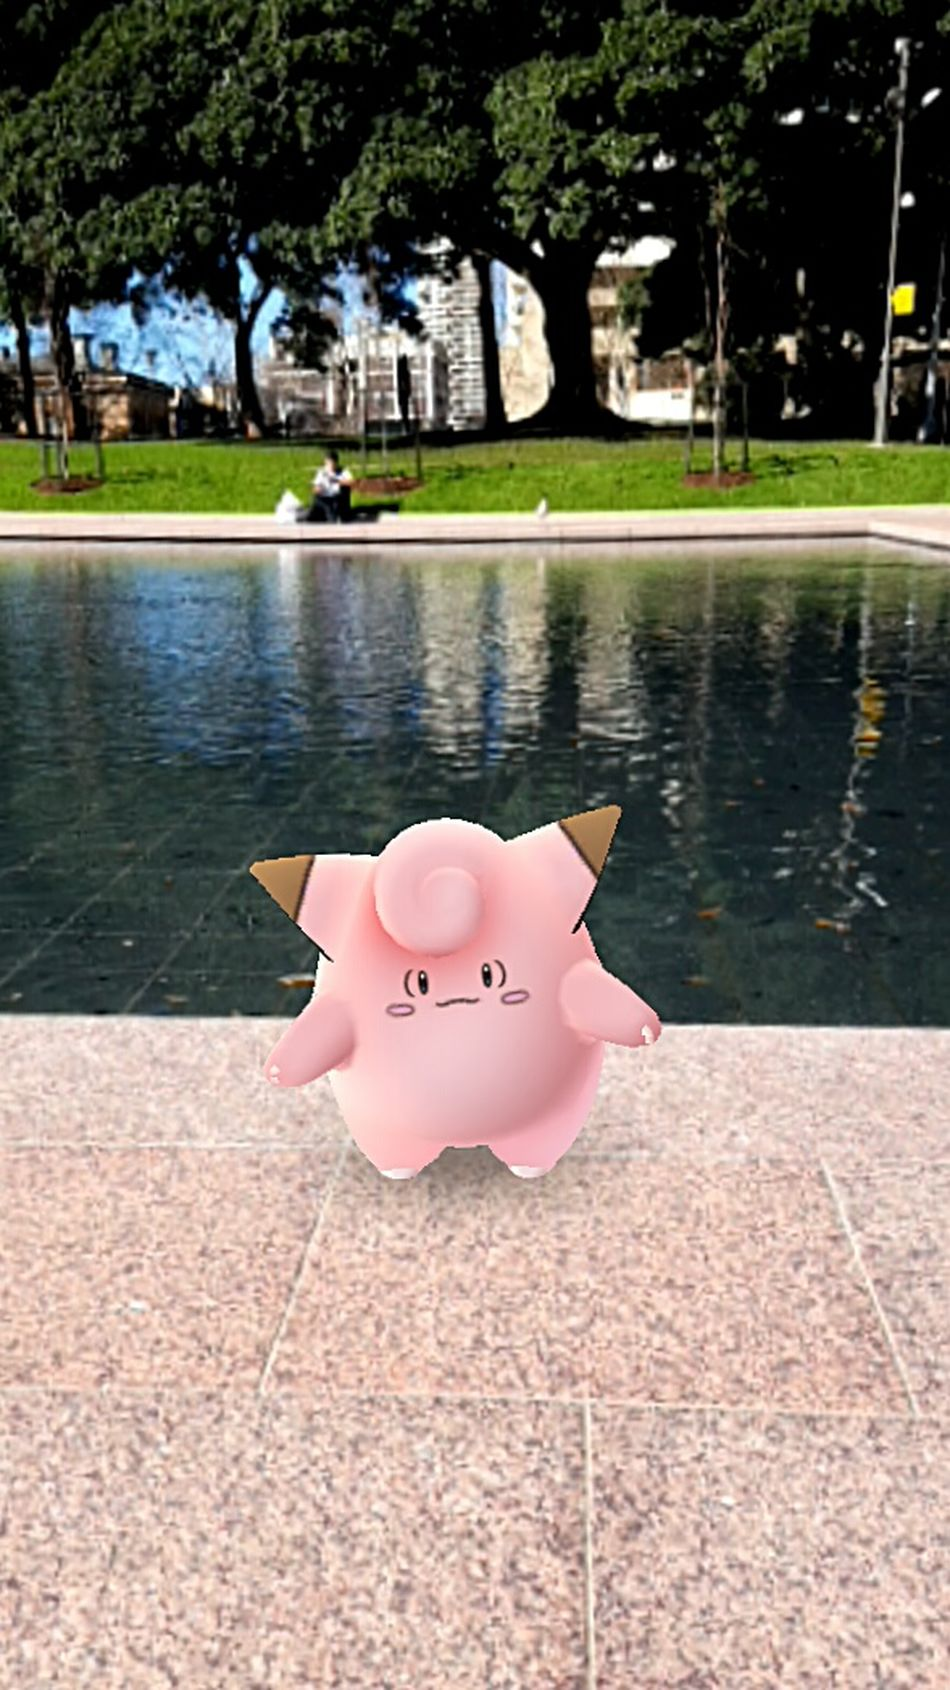 The modern magic Lifestyles Pink Color Magic Moments Pokémon Pokemon Go Augmented Reality Relaxation Lifestyles The Magic Mission